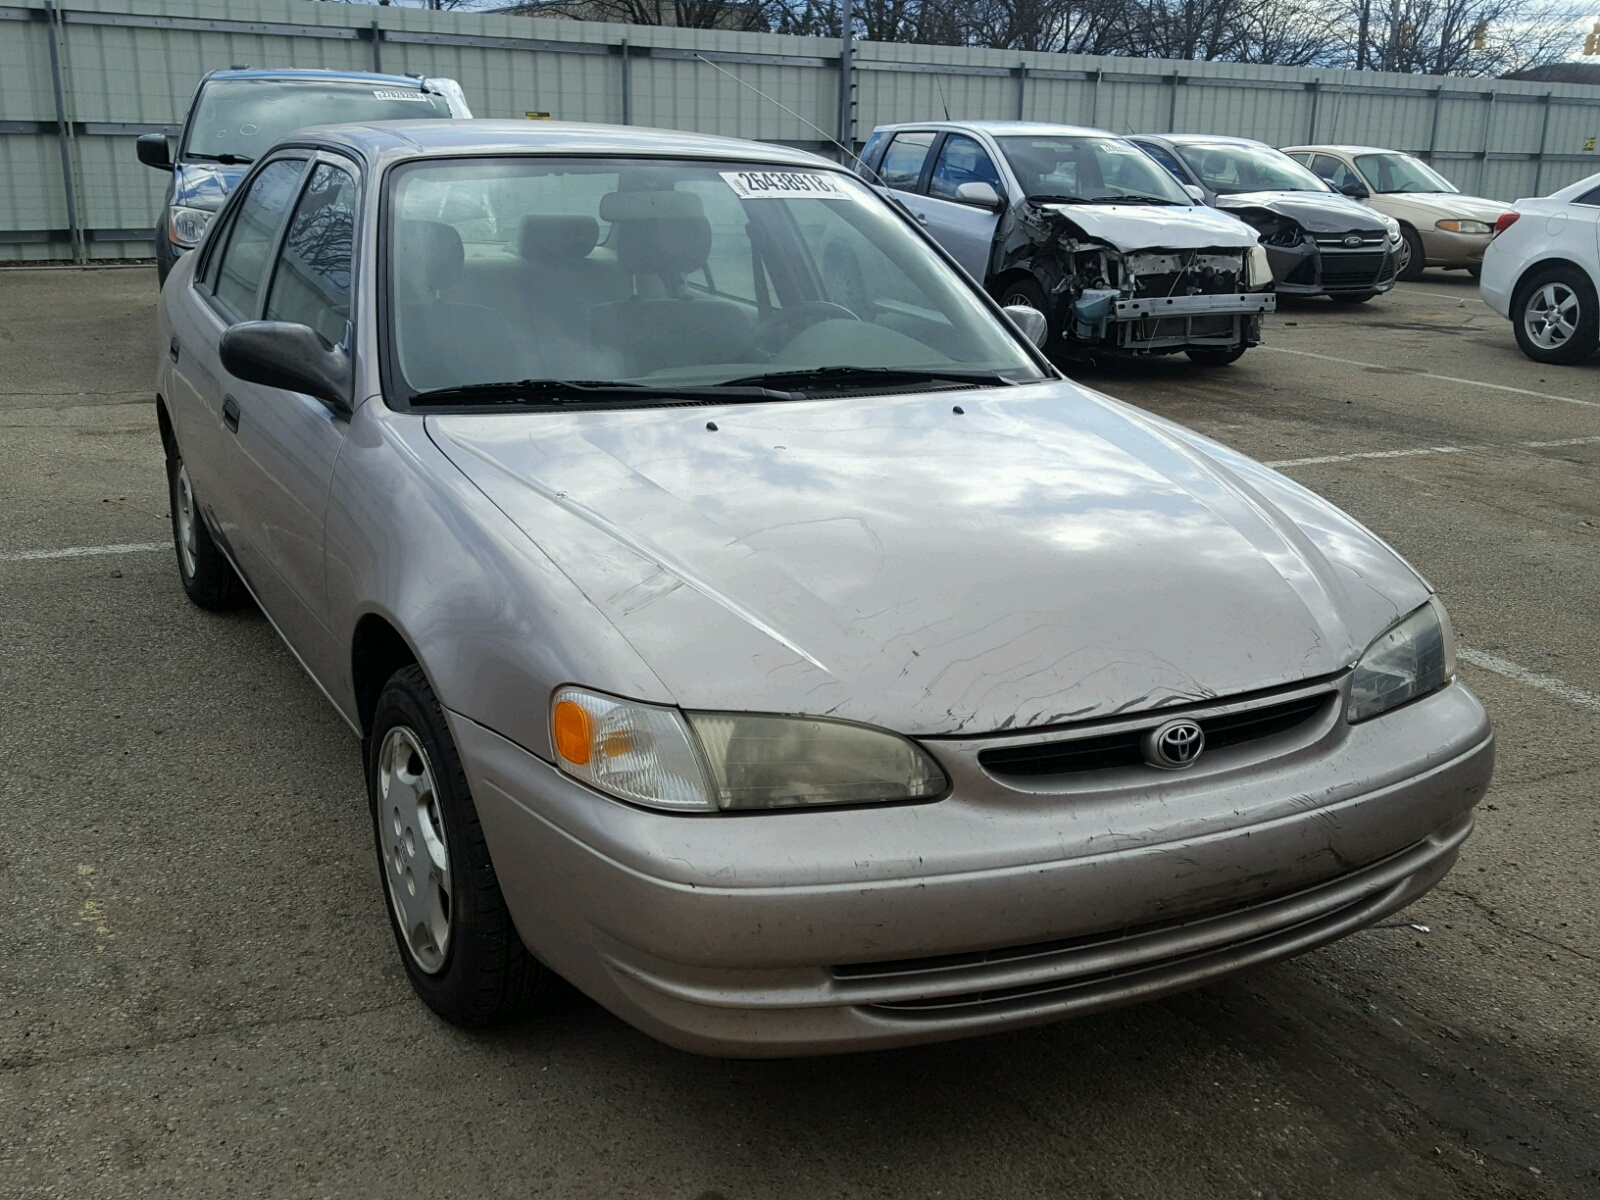 1999 toyota corolla ve for sale at copart moraine oh lot. Black Bedroom Furniture Sets. Home Design Ideas